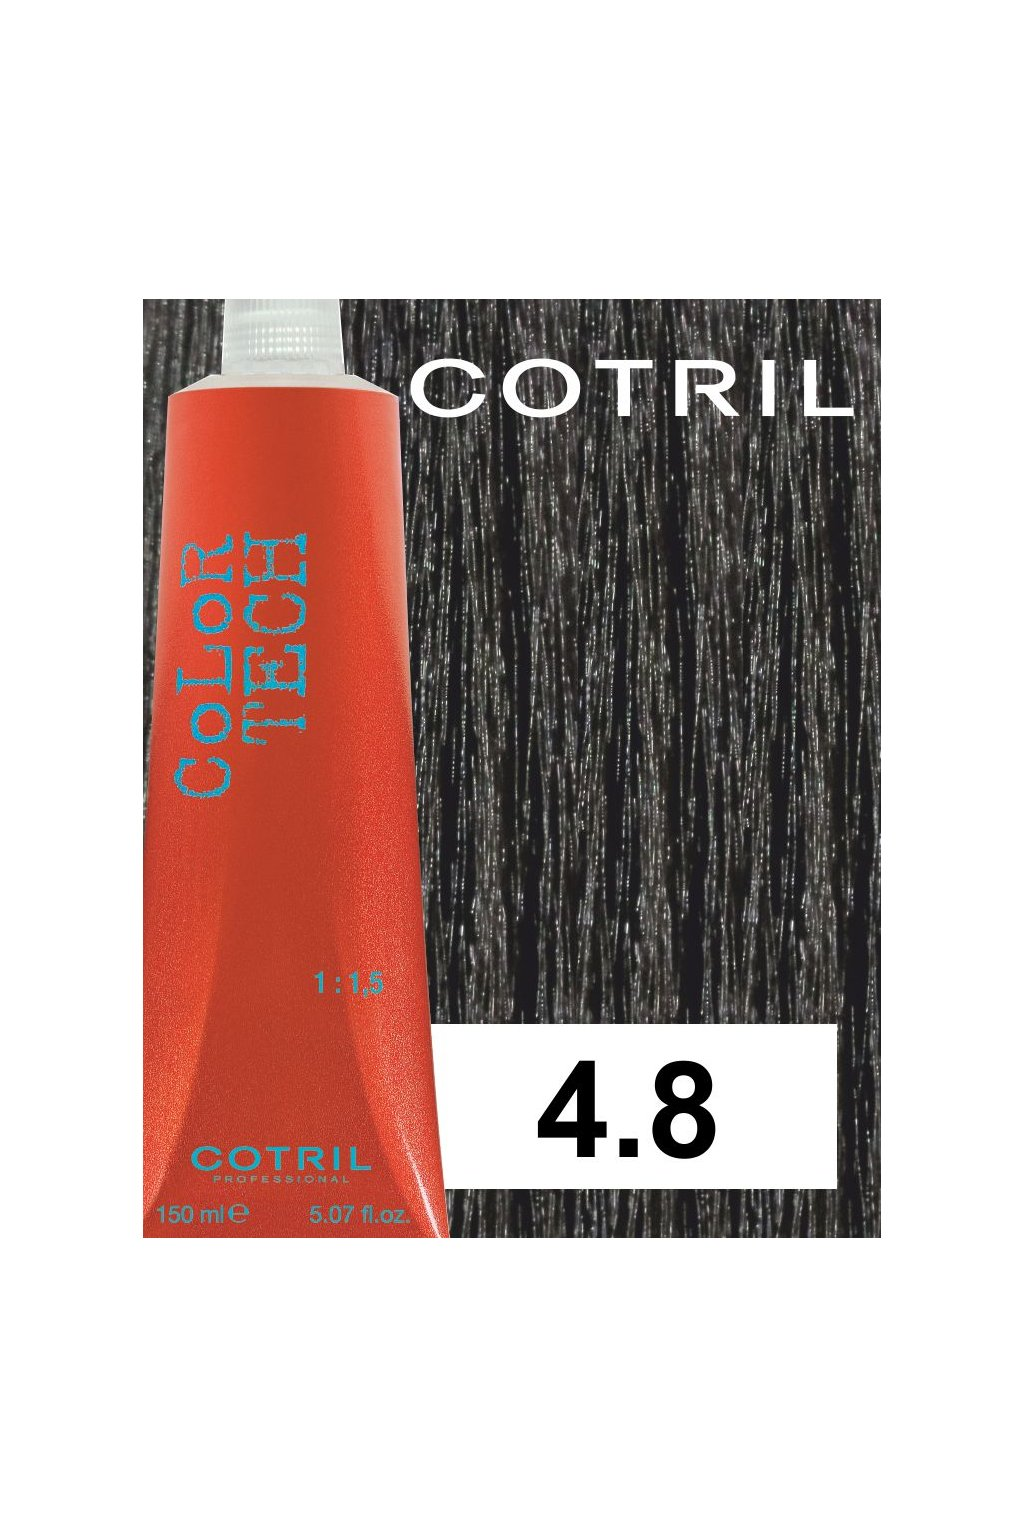 4 8 ct cotril